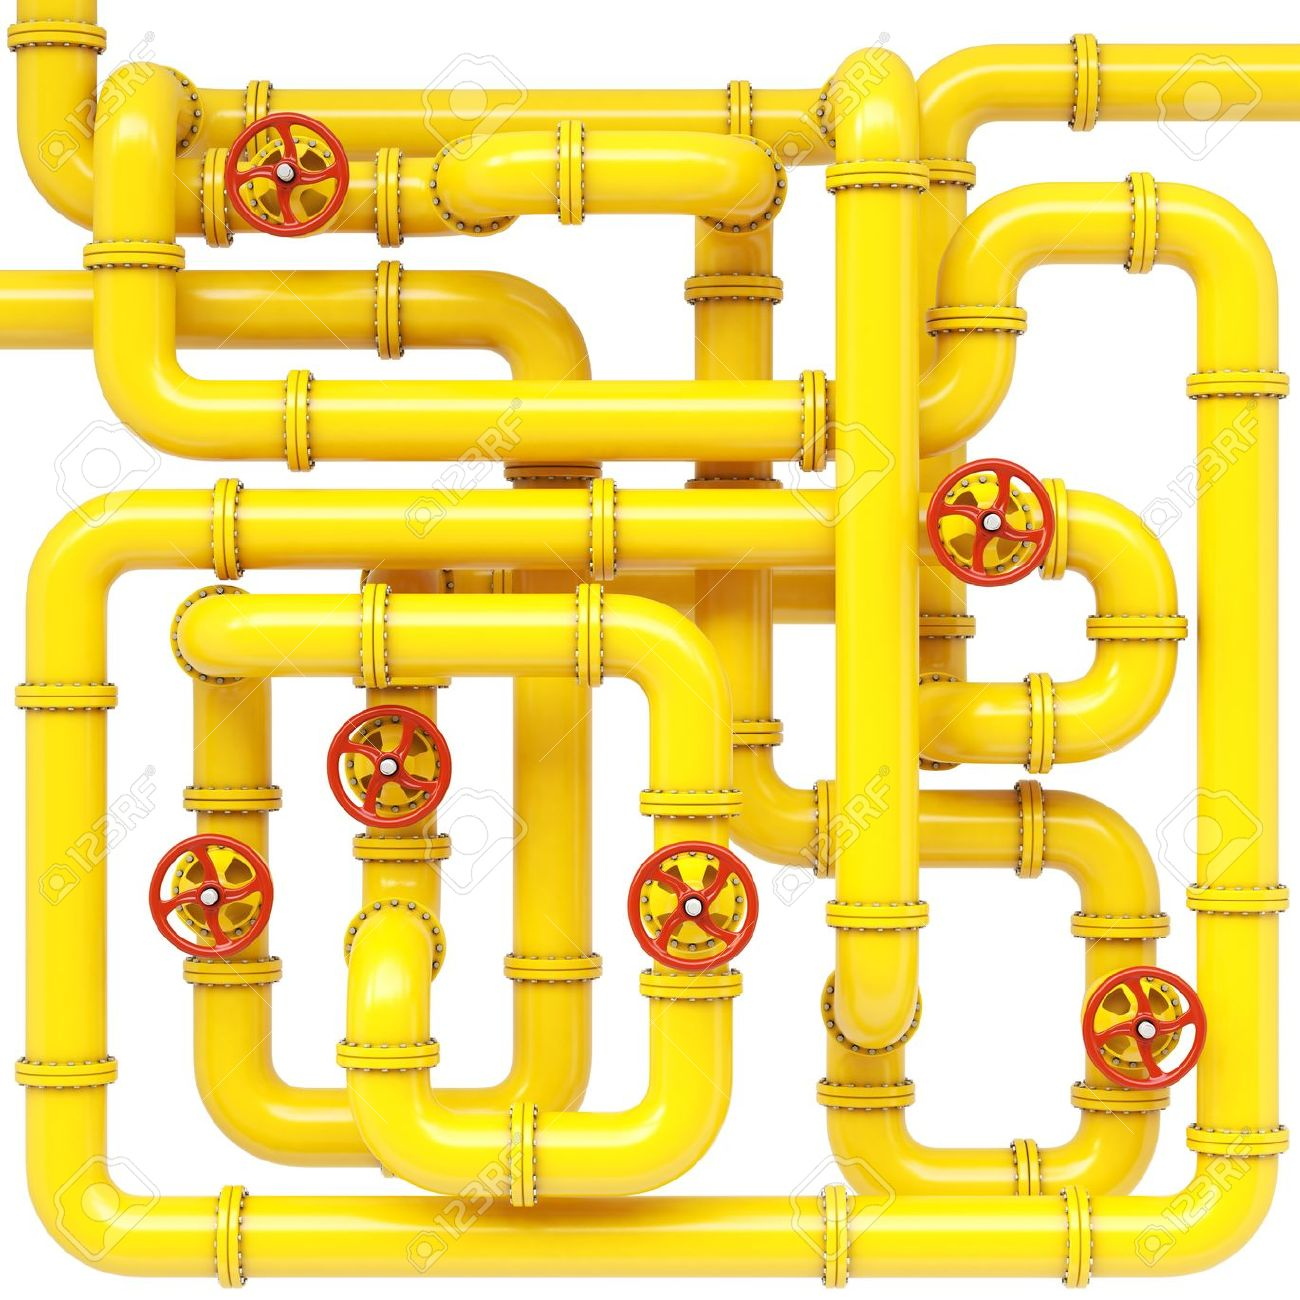 Gas pipe clipart - Clipground